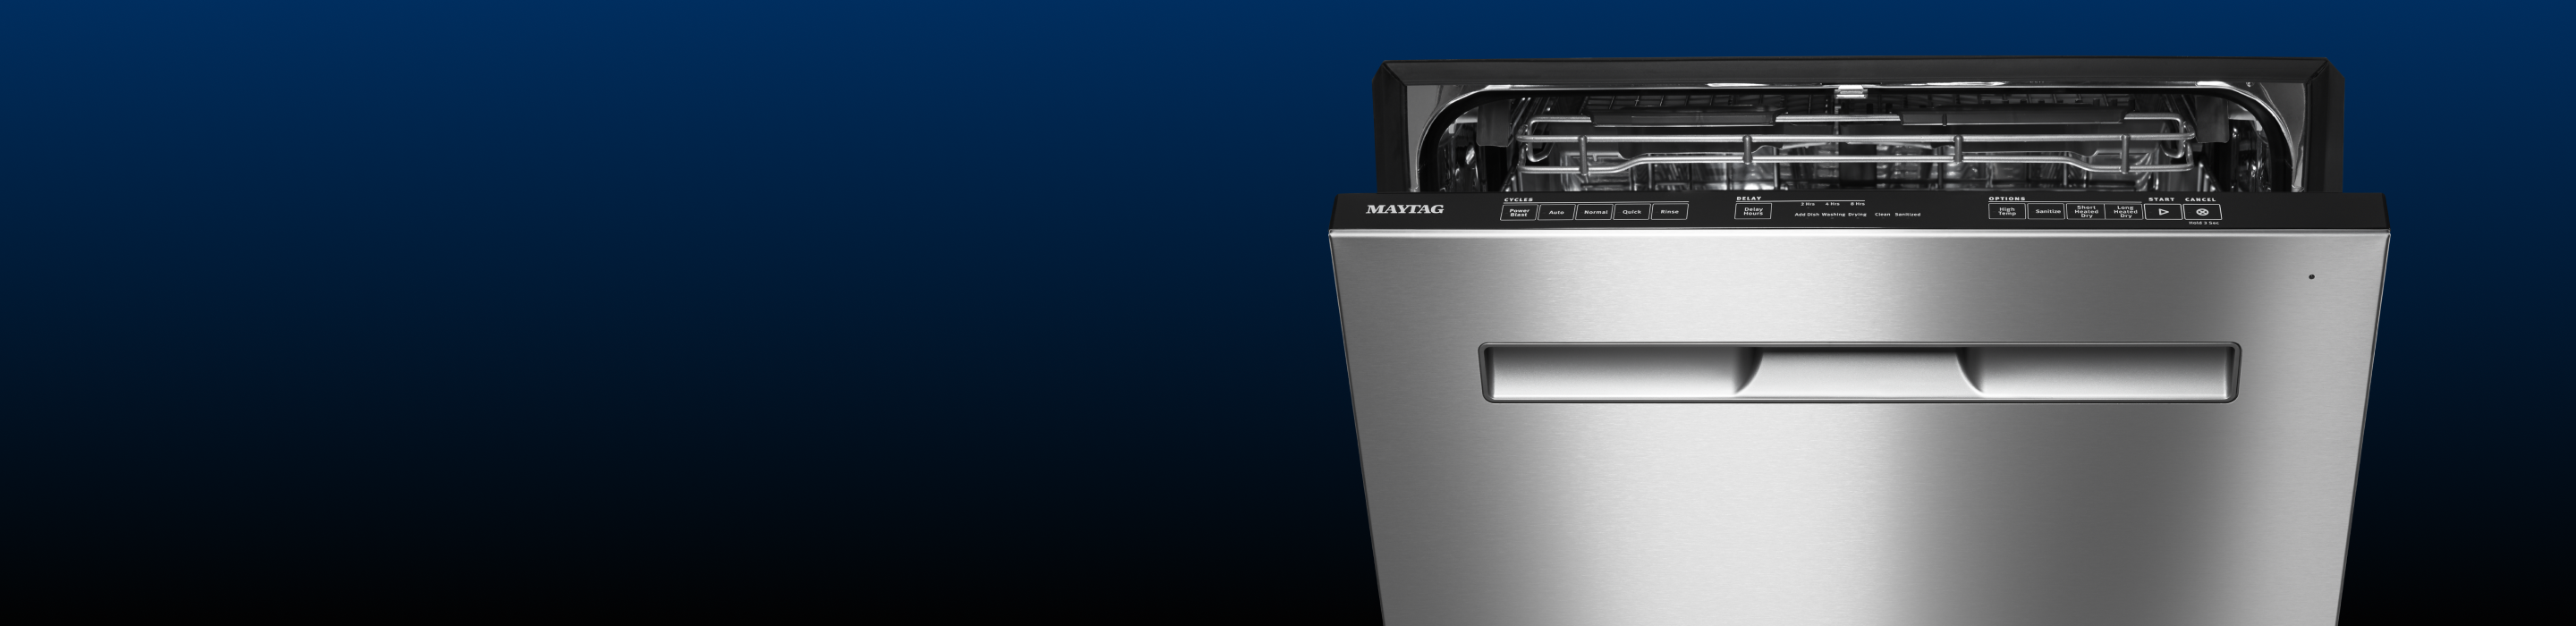 A Maytag stainless dishwasher with its door ajar.